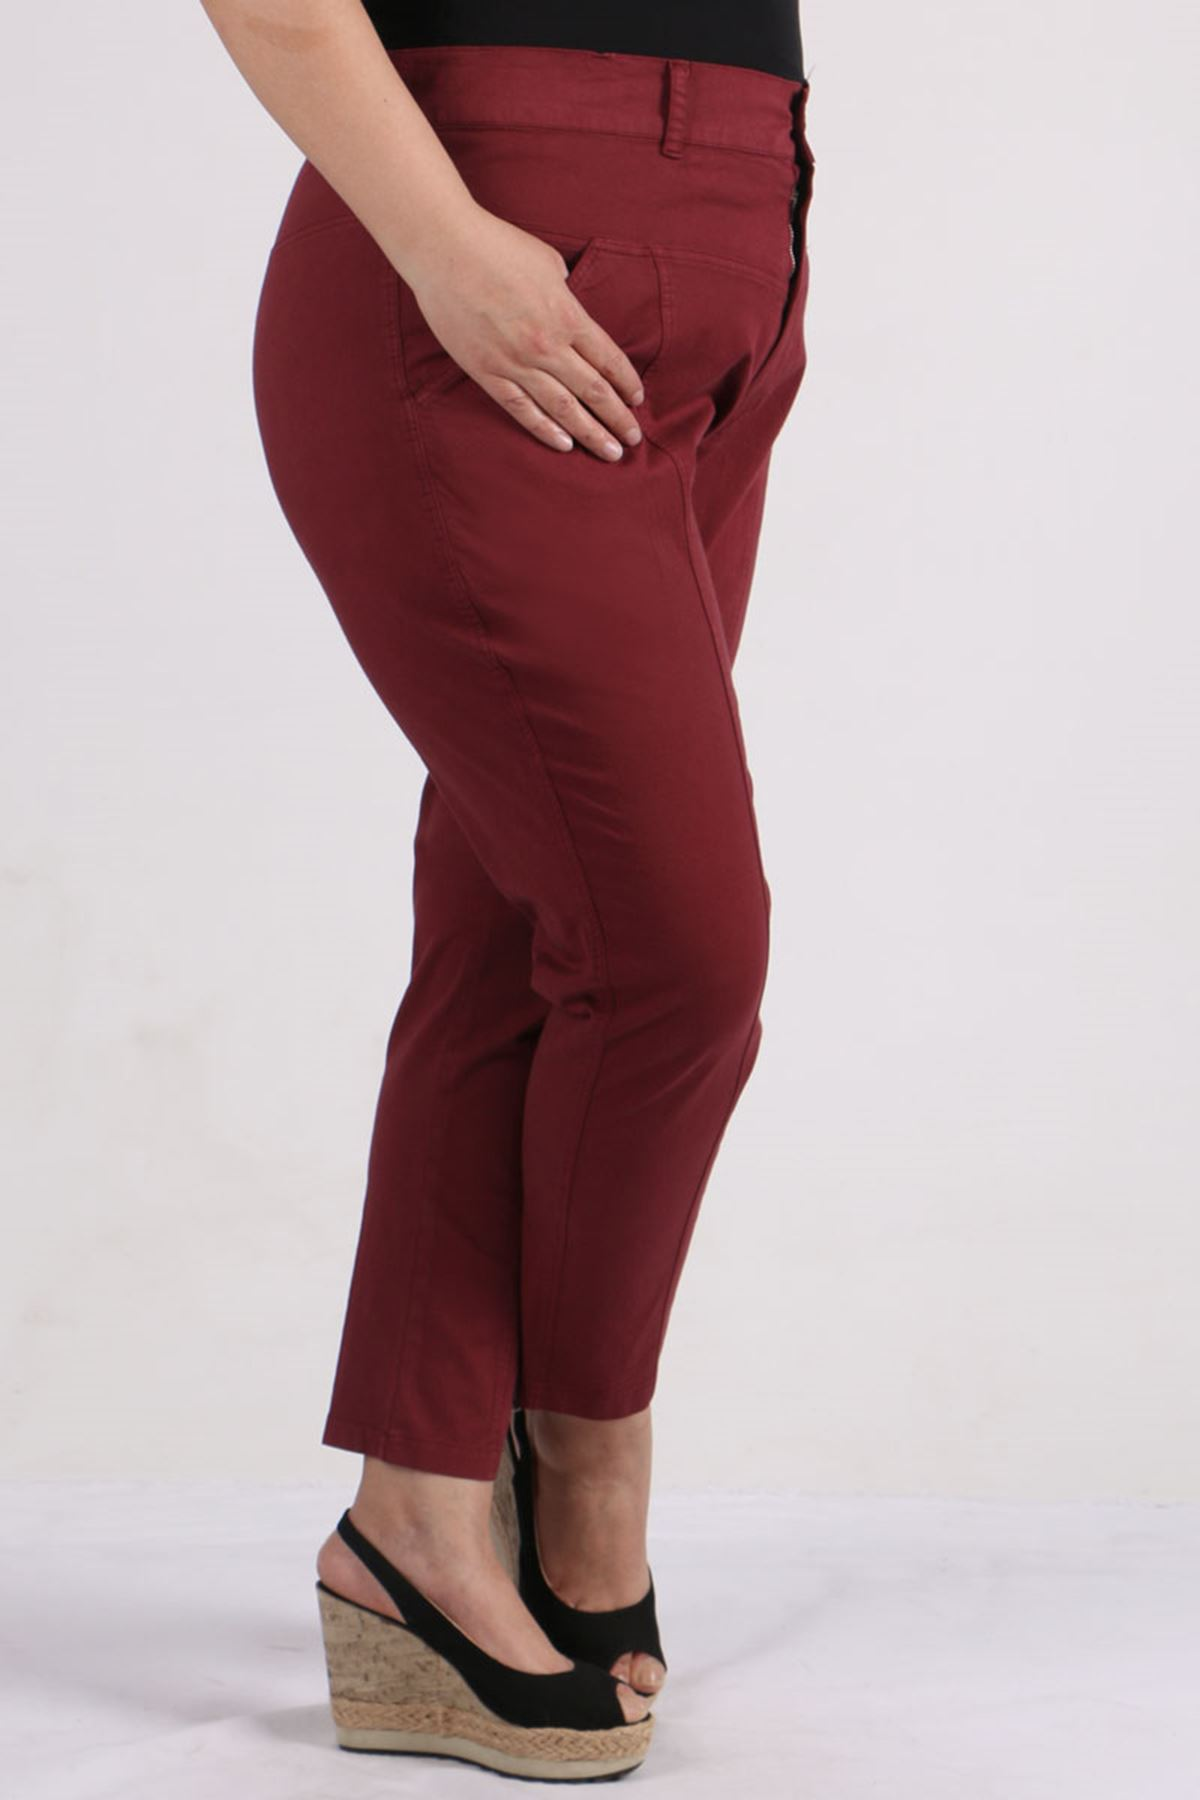 9134 Plus Size Pants with Belt - Claret Red